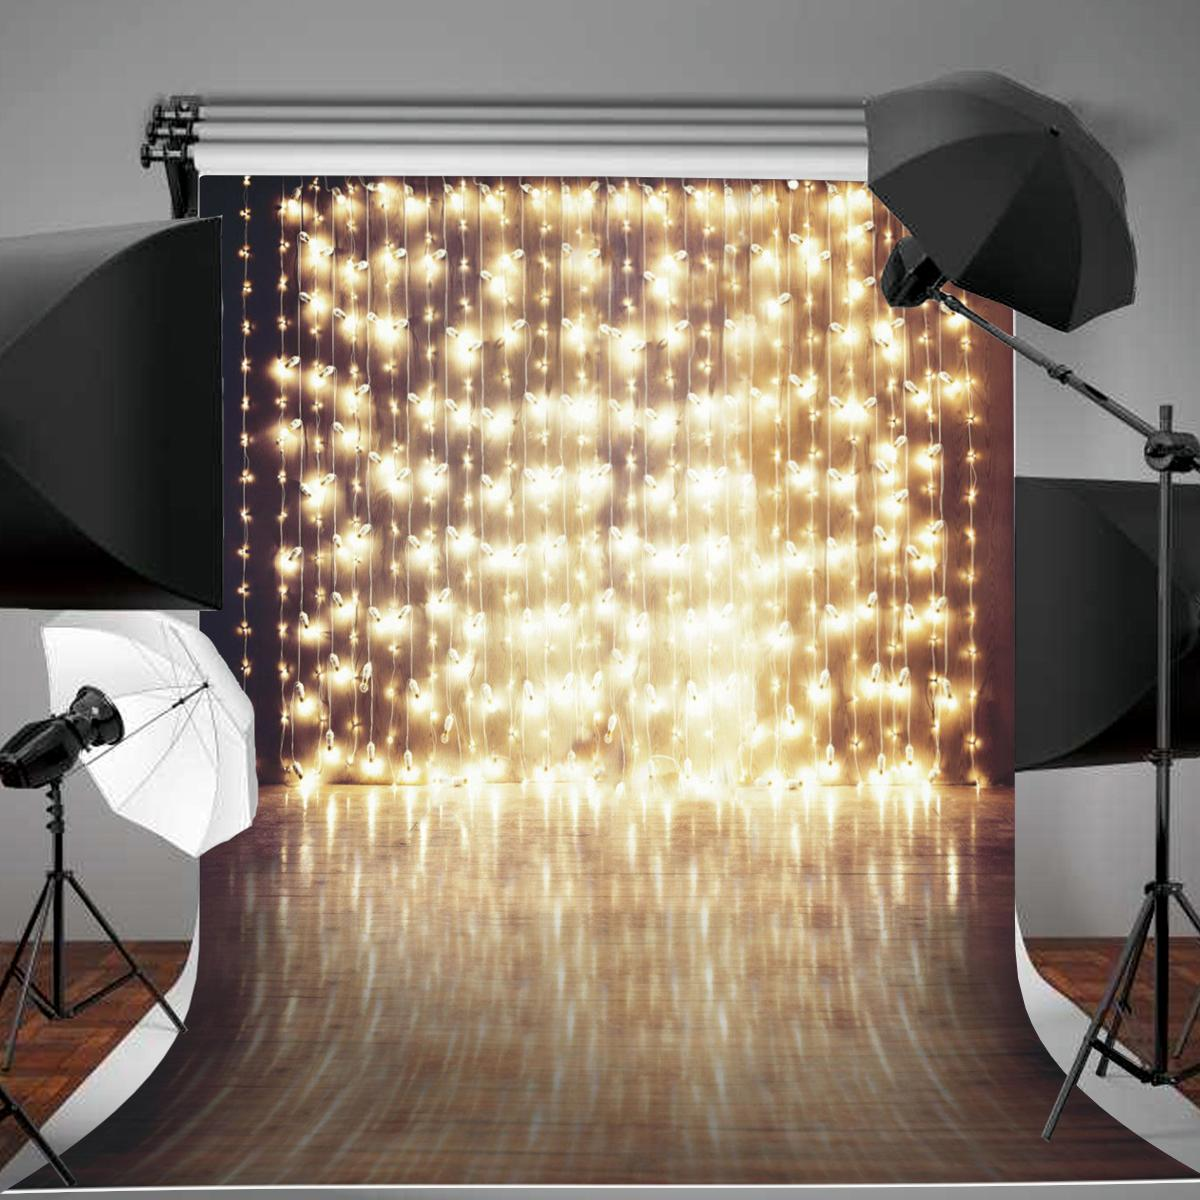 3x5ft Photography Background Vinyl Valentine's Day Photo Studio Backdrop New Arrival